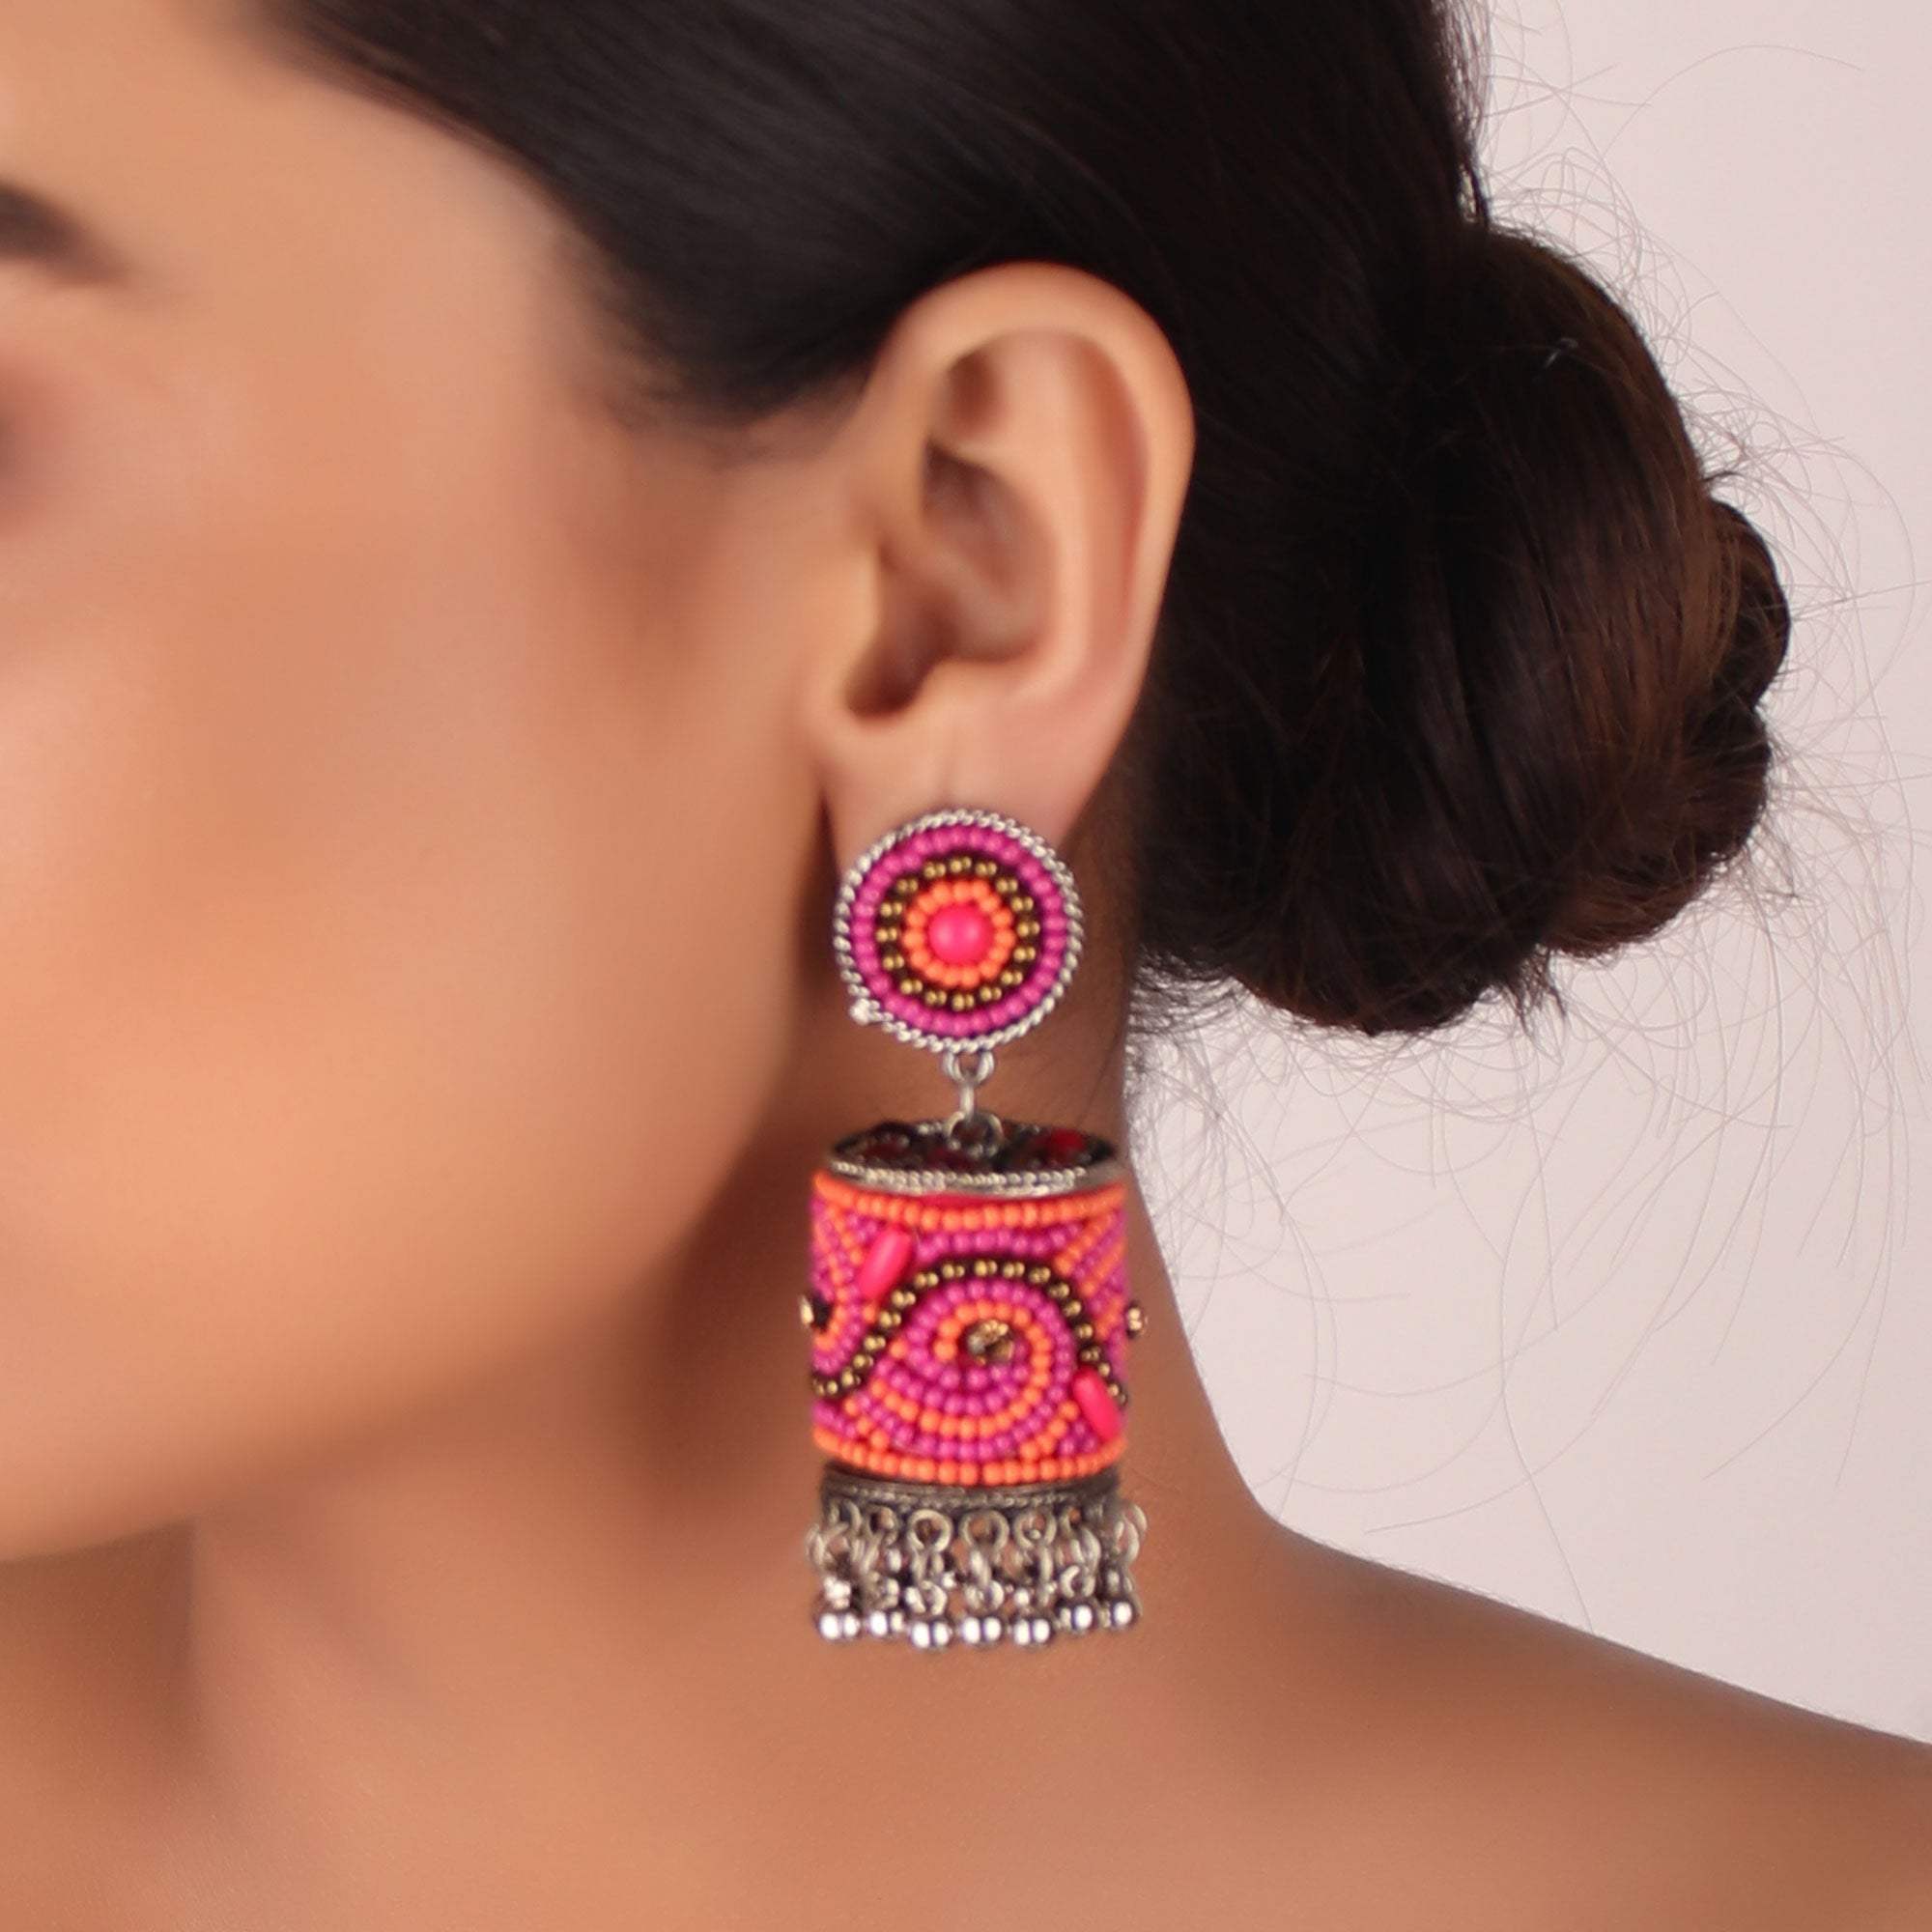 Earrings,The Sea Bed Earrings in Pink and Orange - Cippele Multi Store